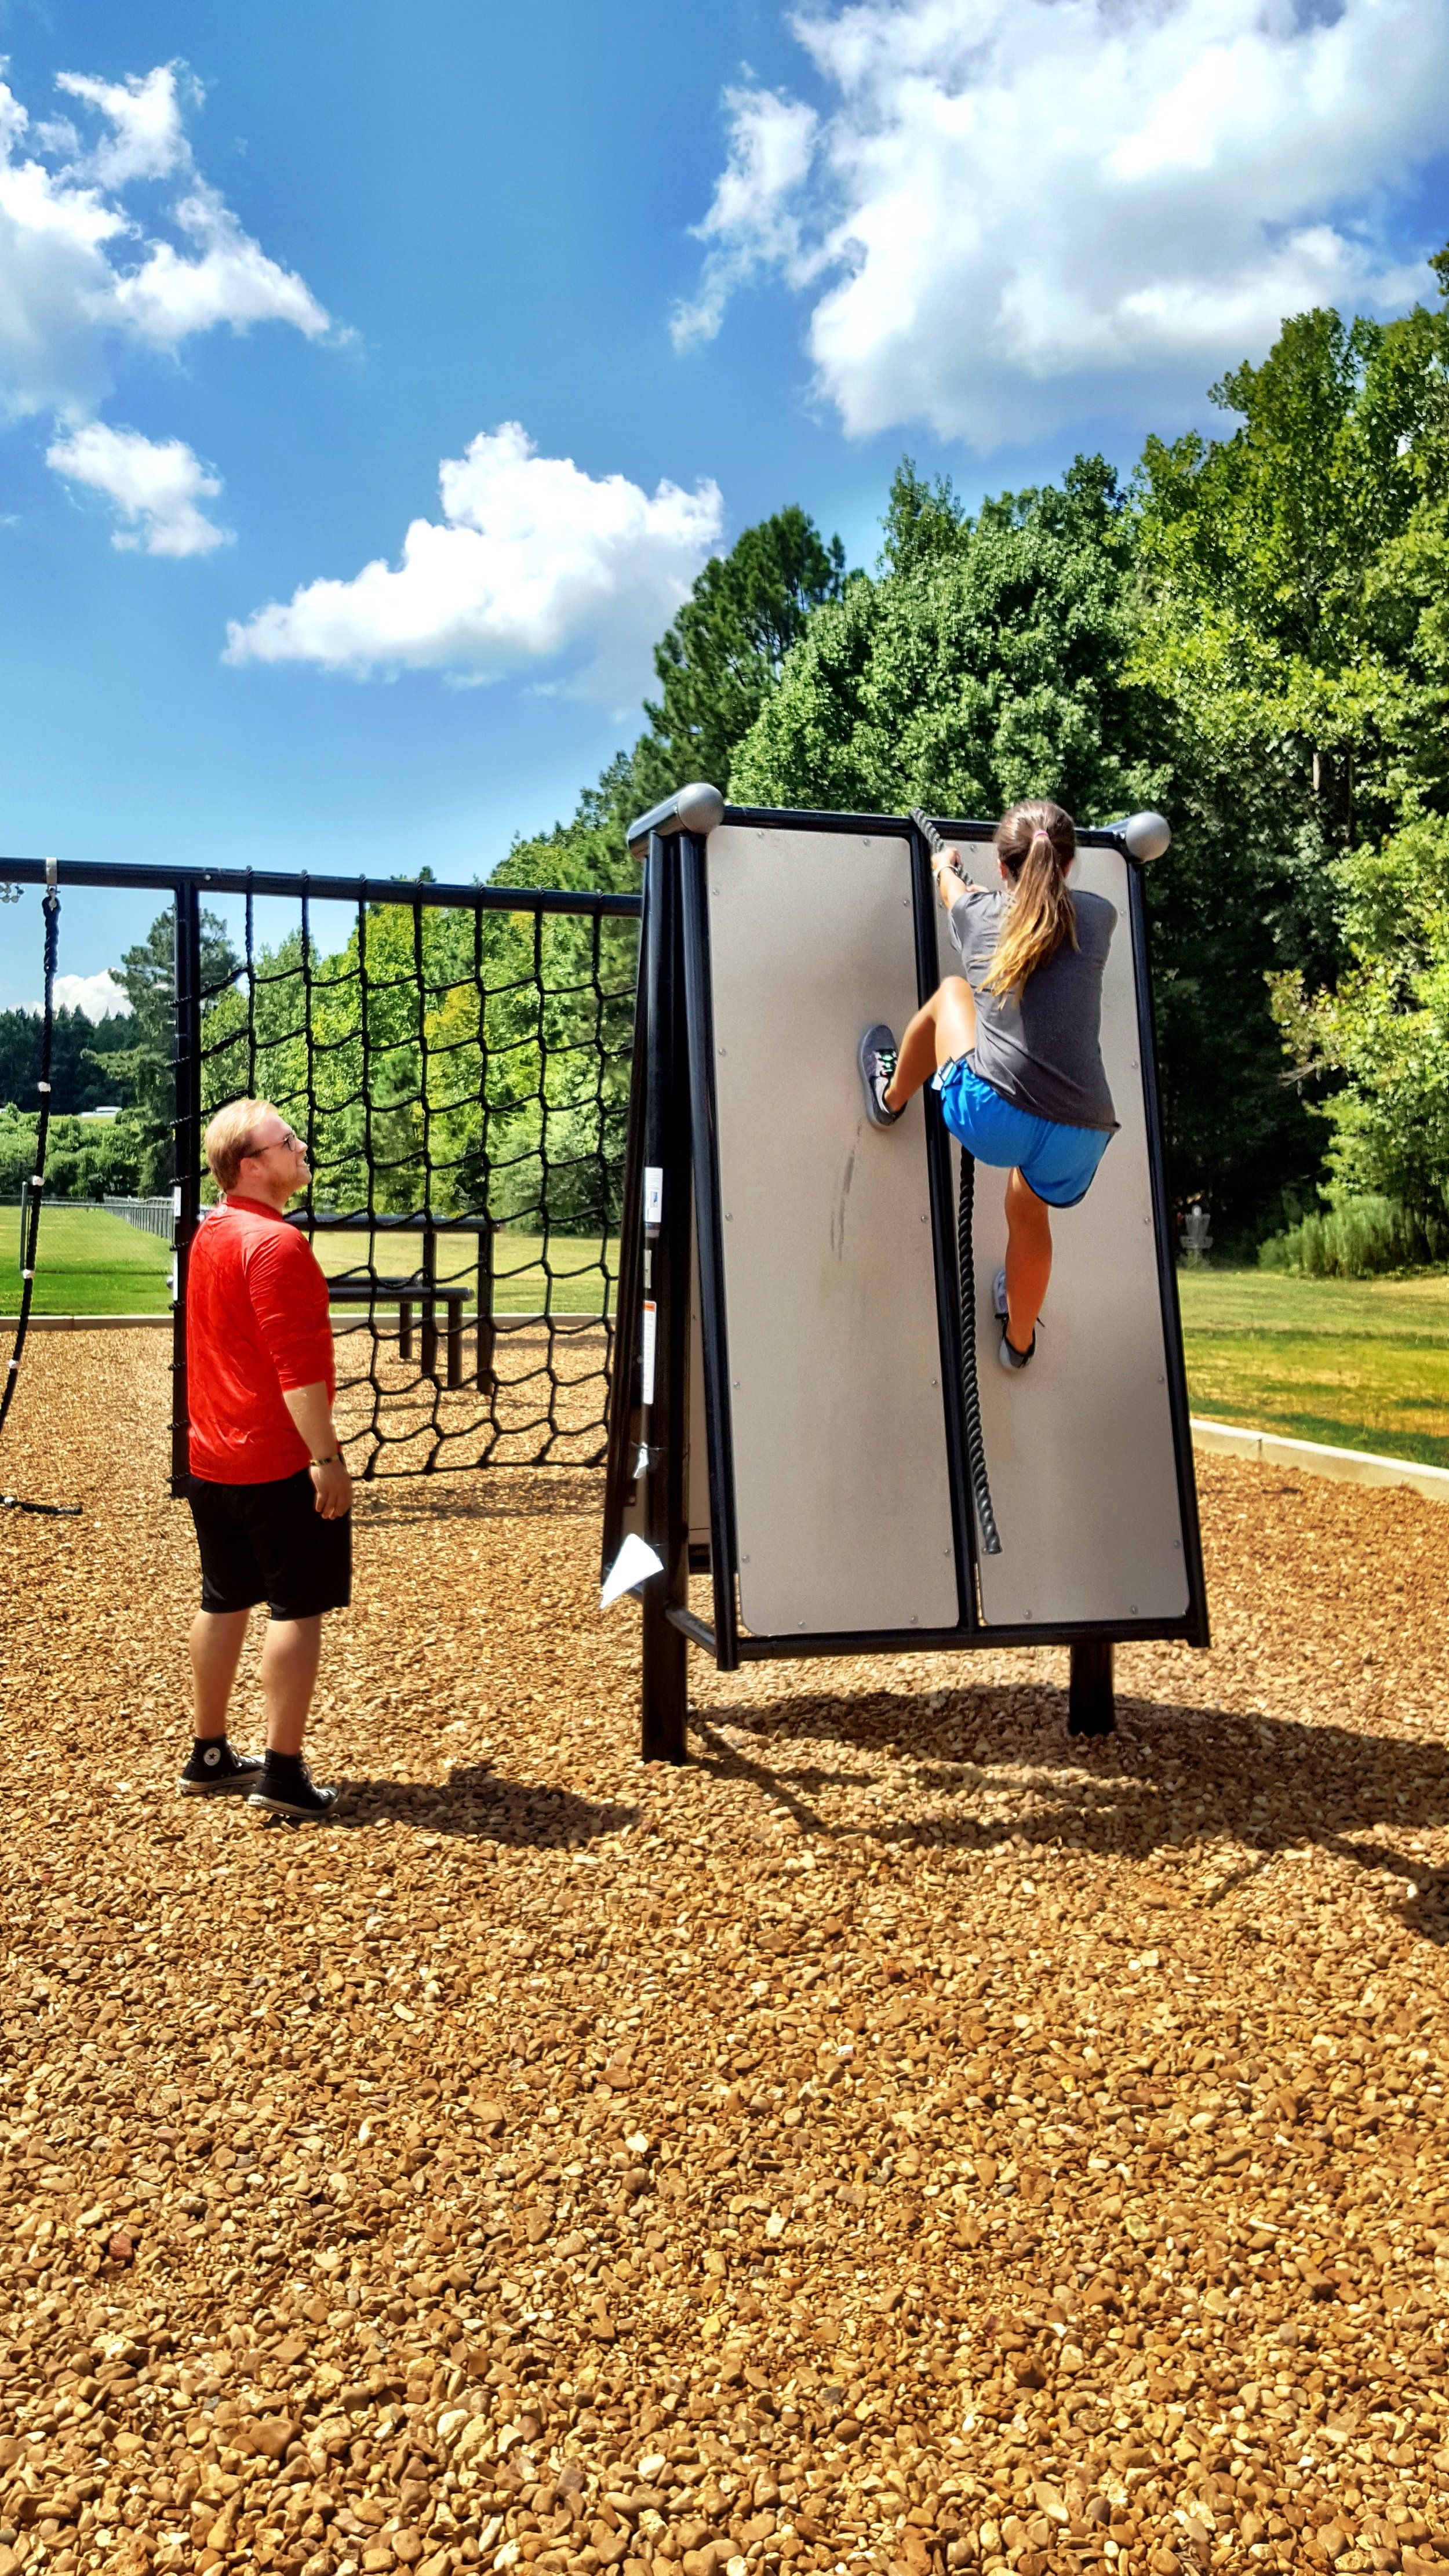 A-Wall Obstacle Station